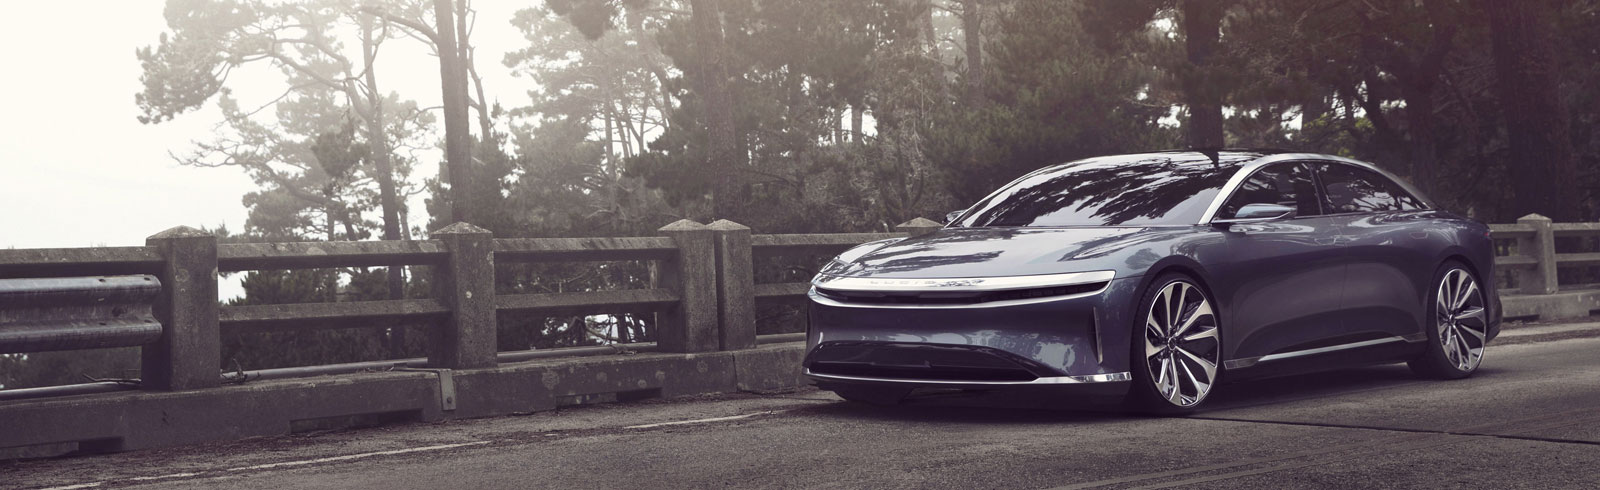 Lucid Air is available for reservation in select European countries